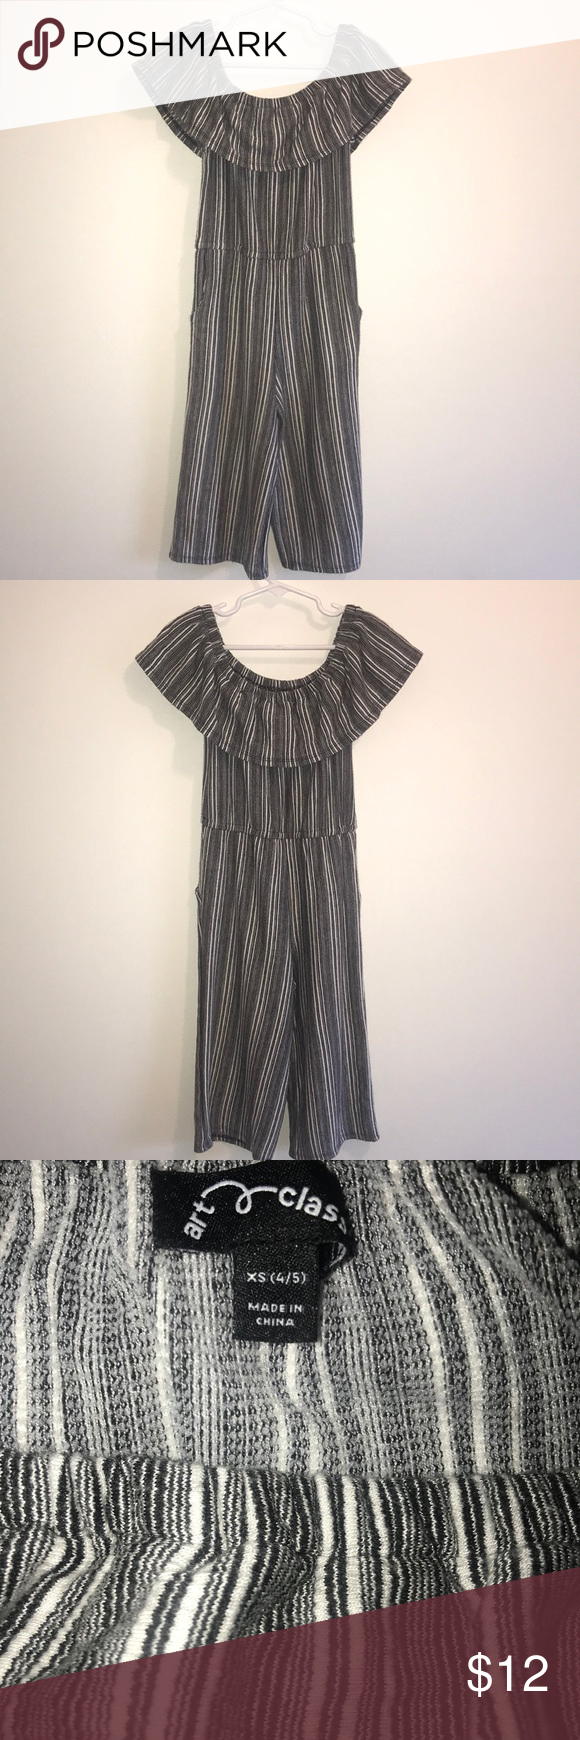 Art Class Girl's Off The Shoulder Jumpsuit The adorable ...